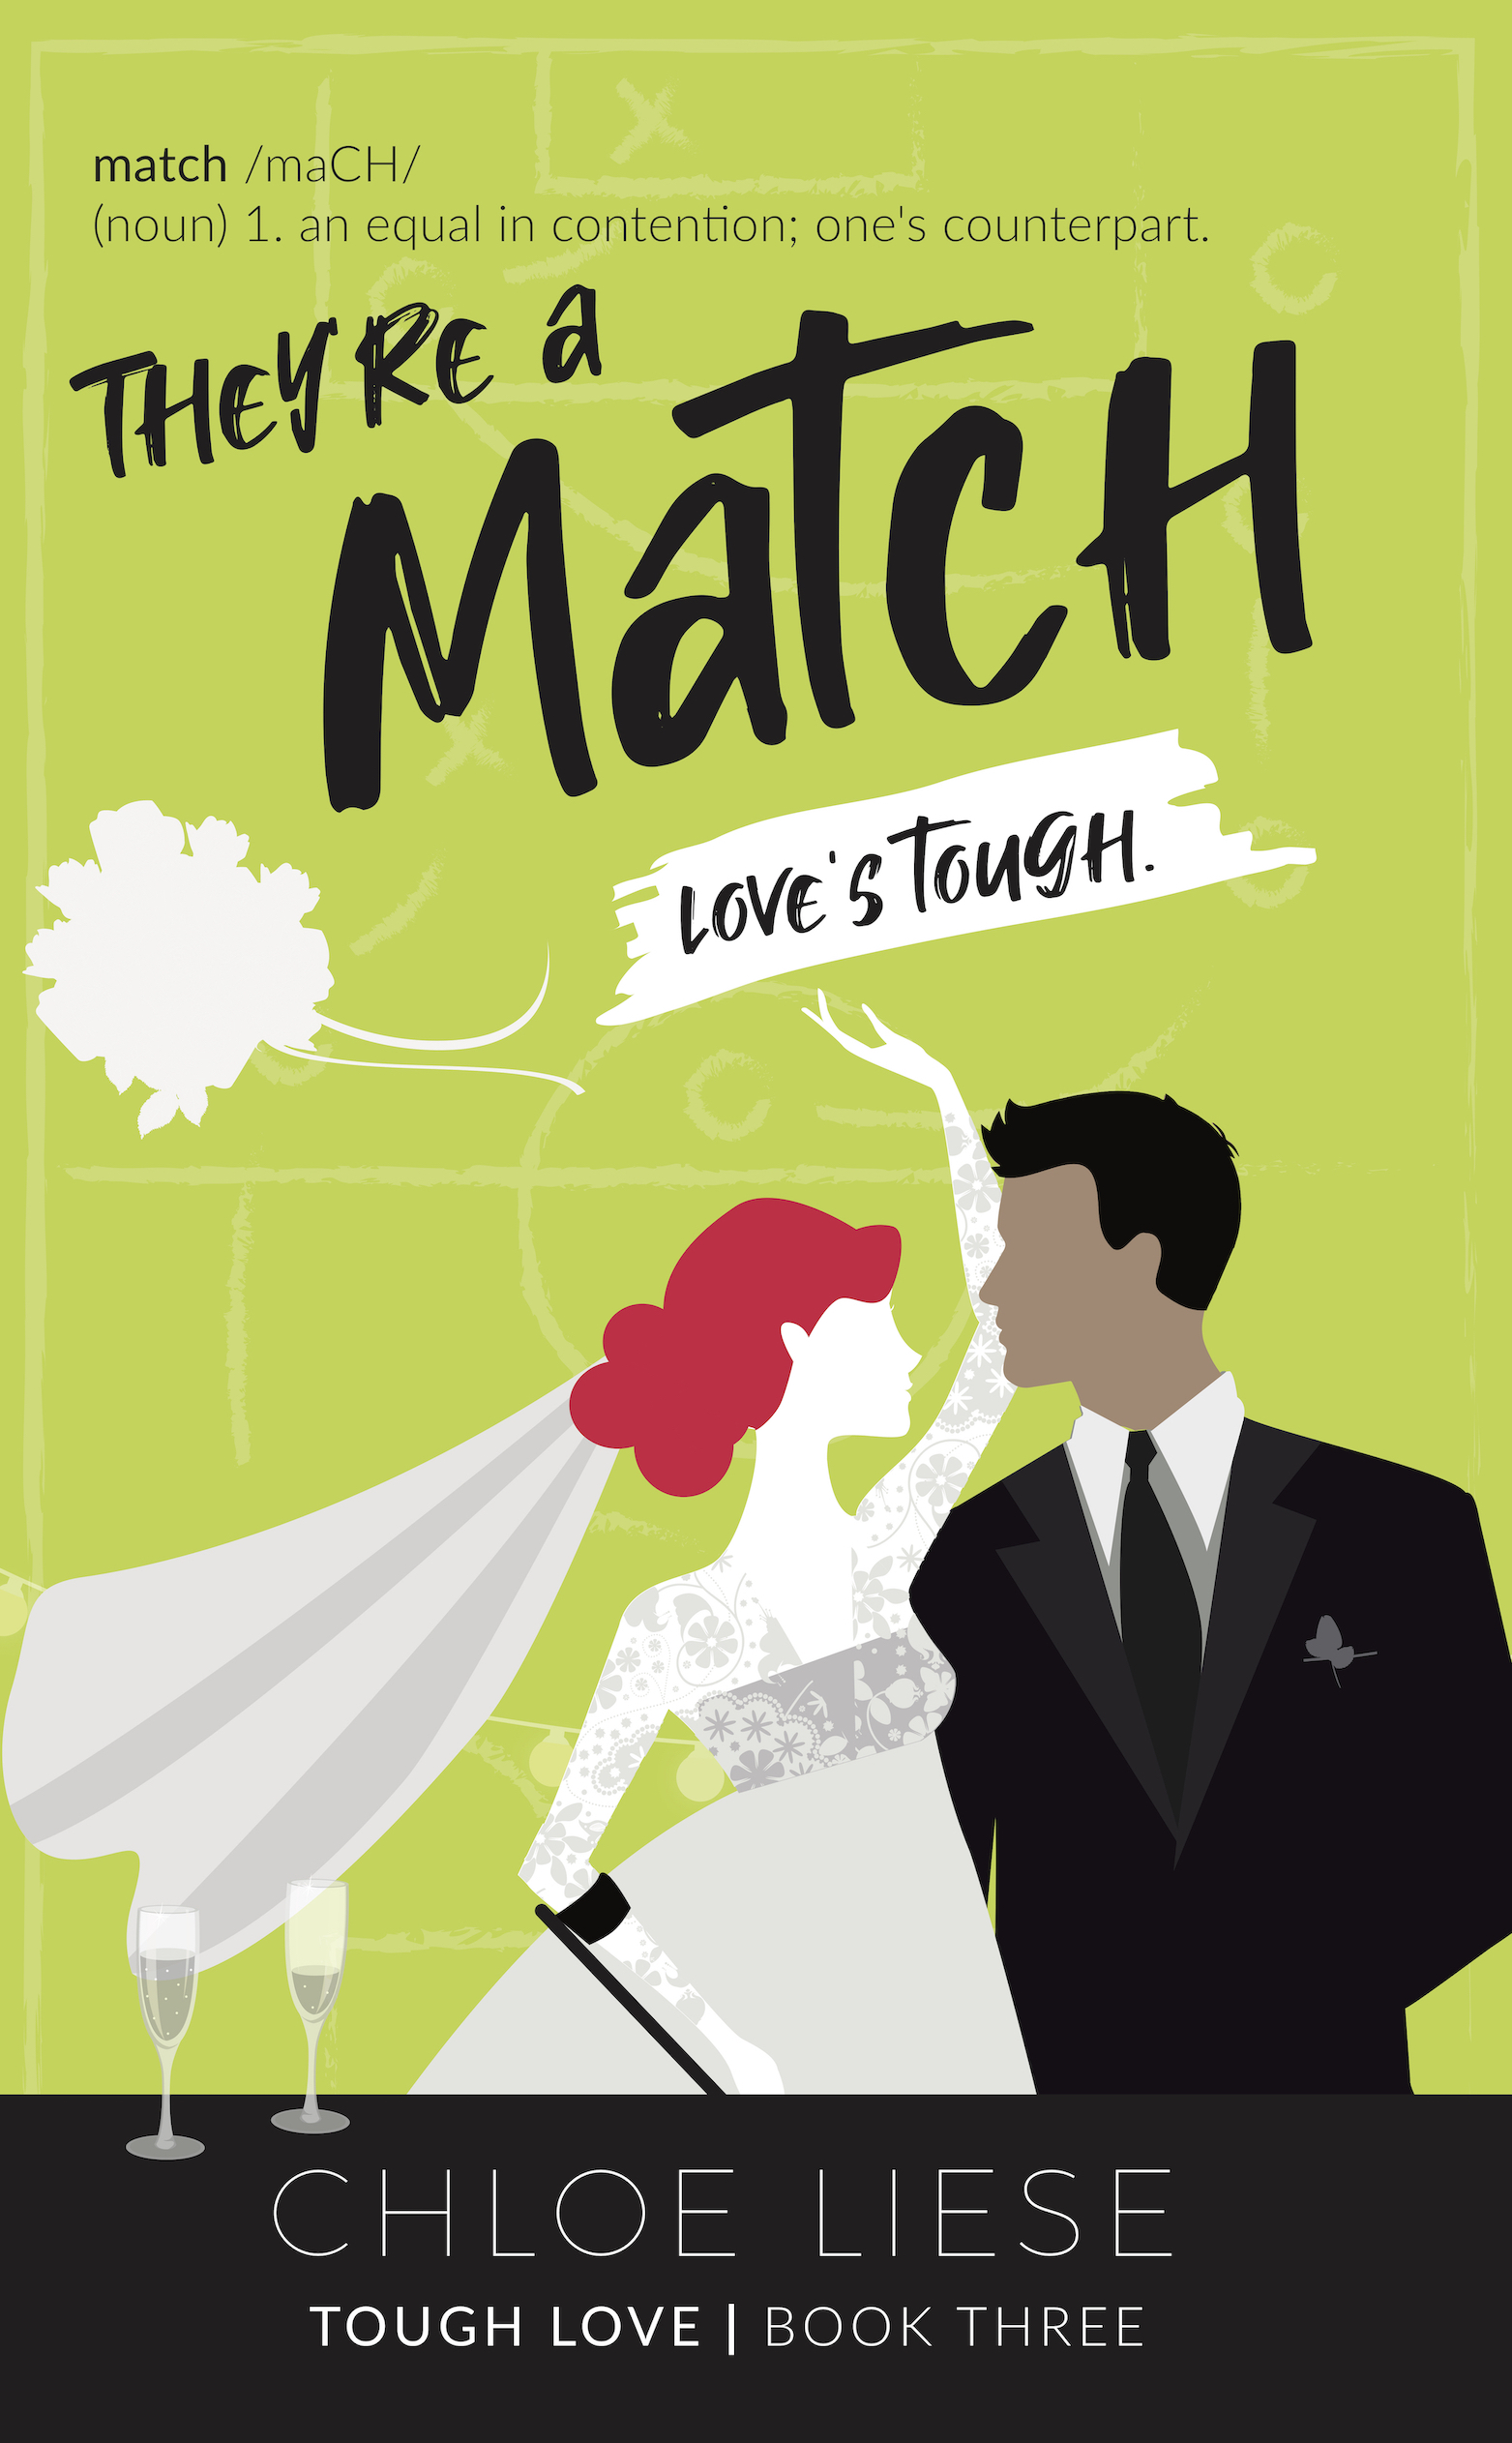 They're a Match book cover design by Chloe Liese